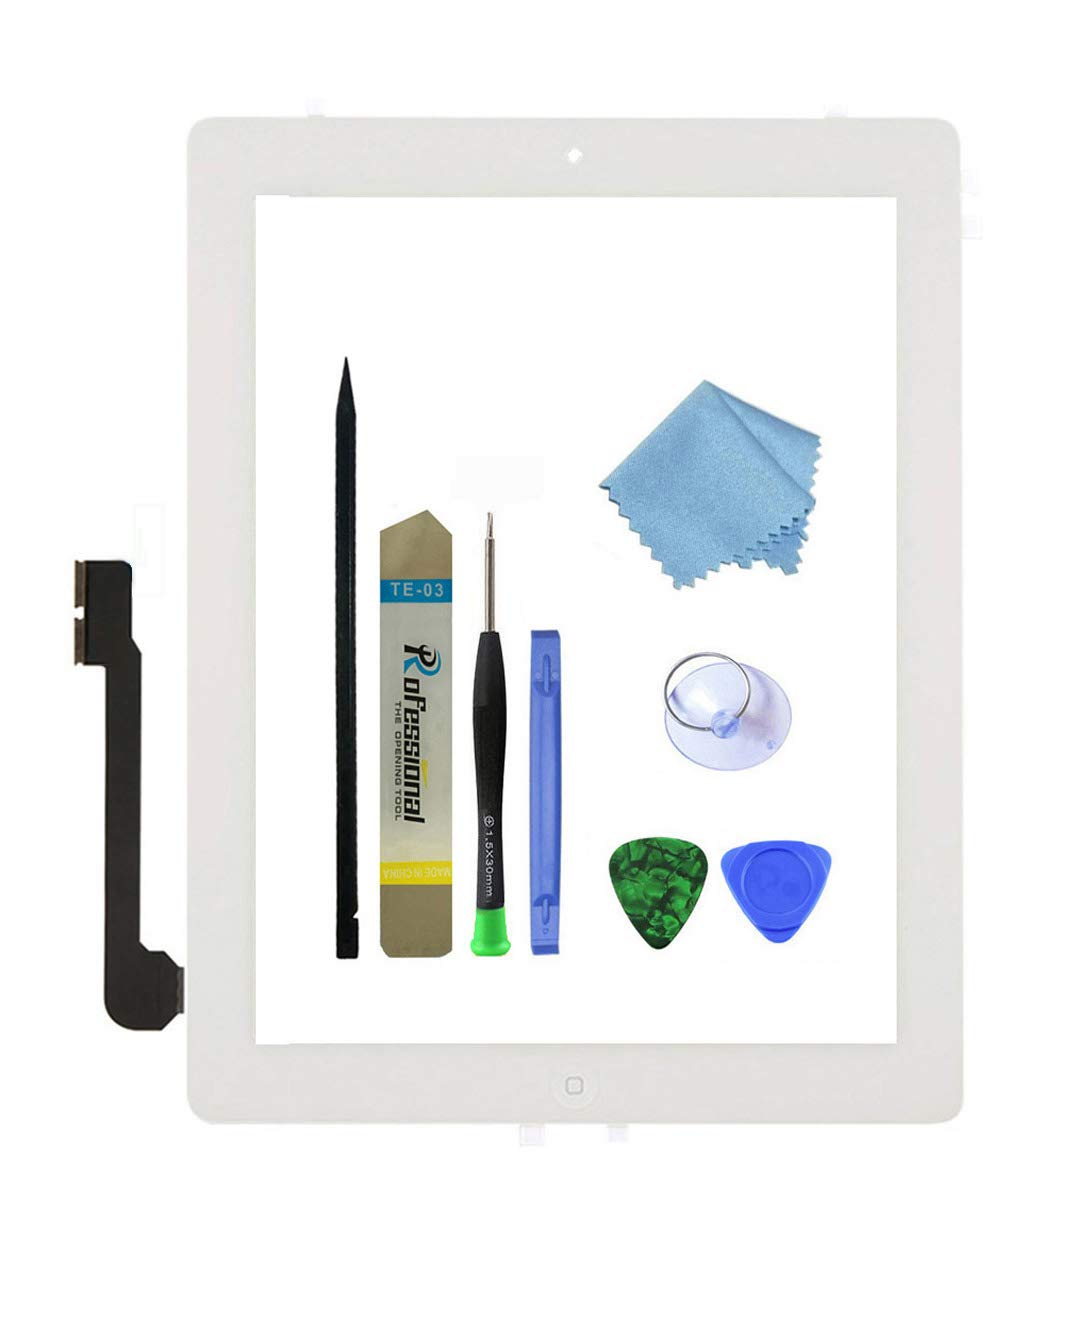 Zentop Touch Screen Digitizer replacement Assembly for White iPad 3 Model A1403, A1416, A1430 whit Home Button, Camera Holder ,Preinstalled Adhesive,Frame Bezel, tool Kit.